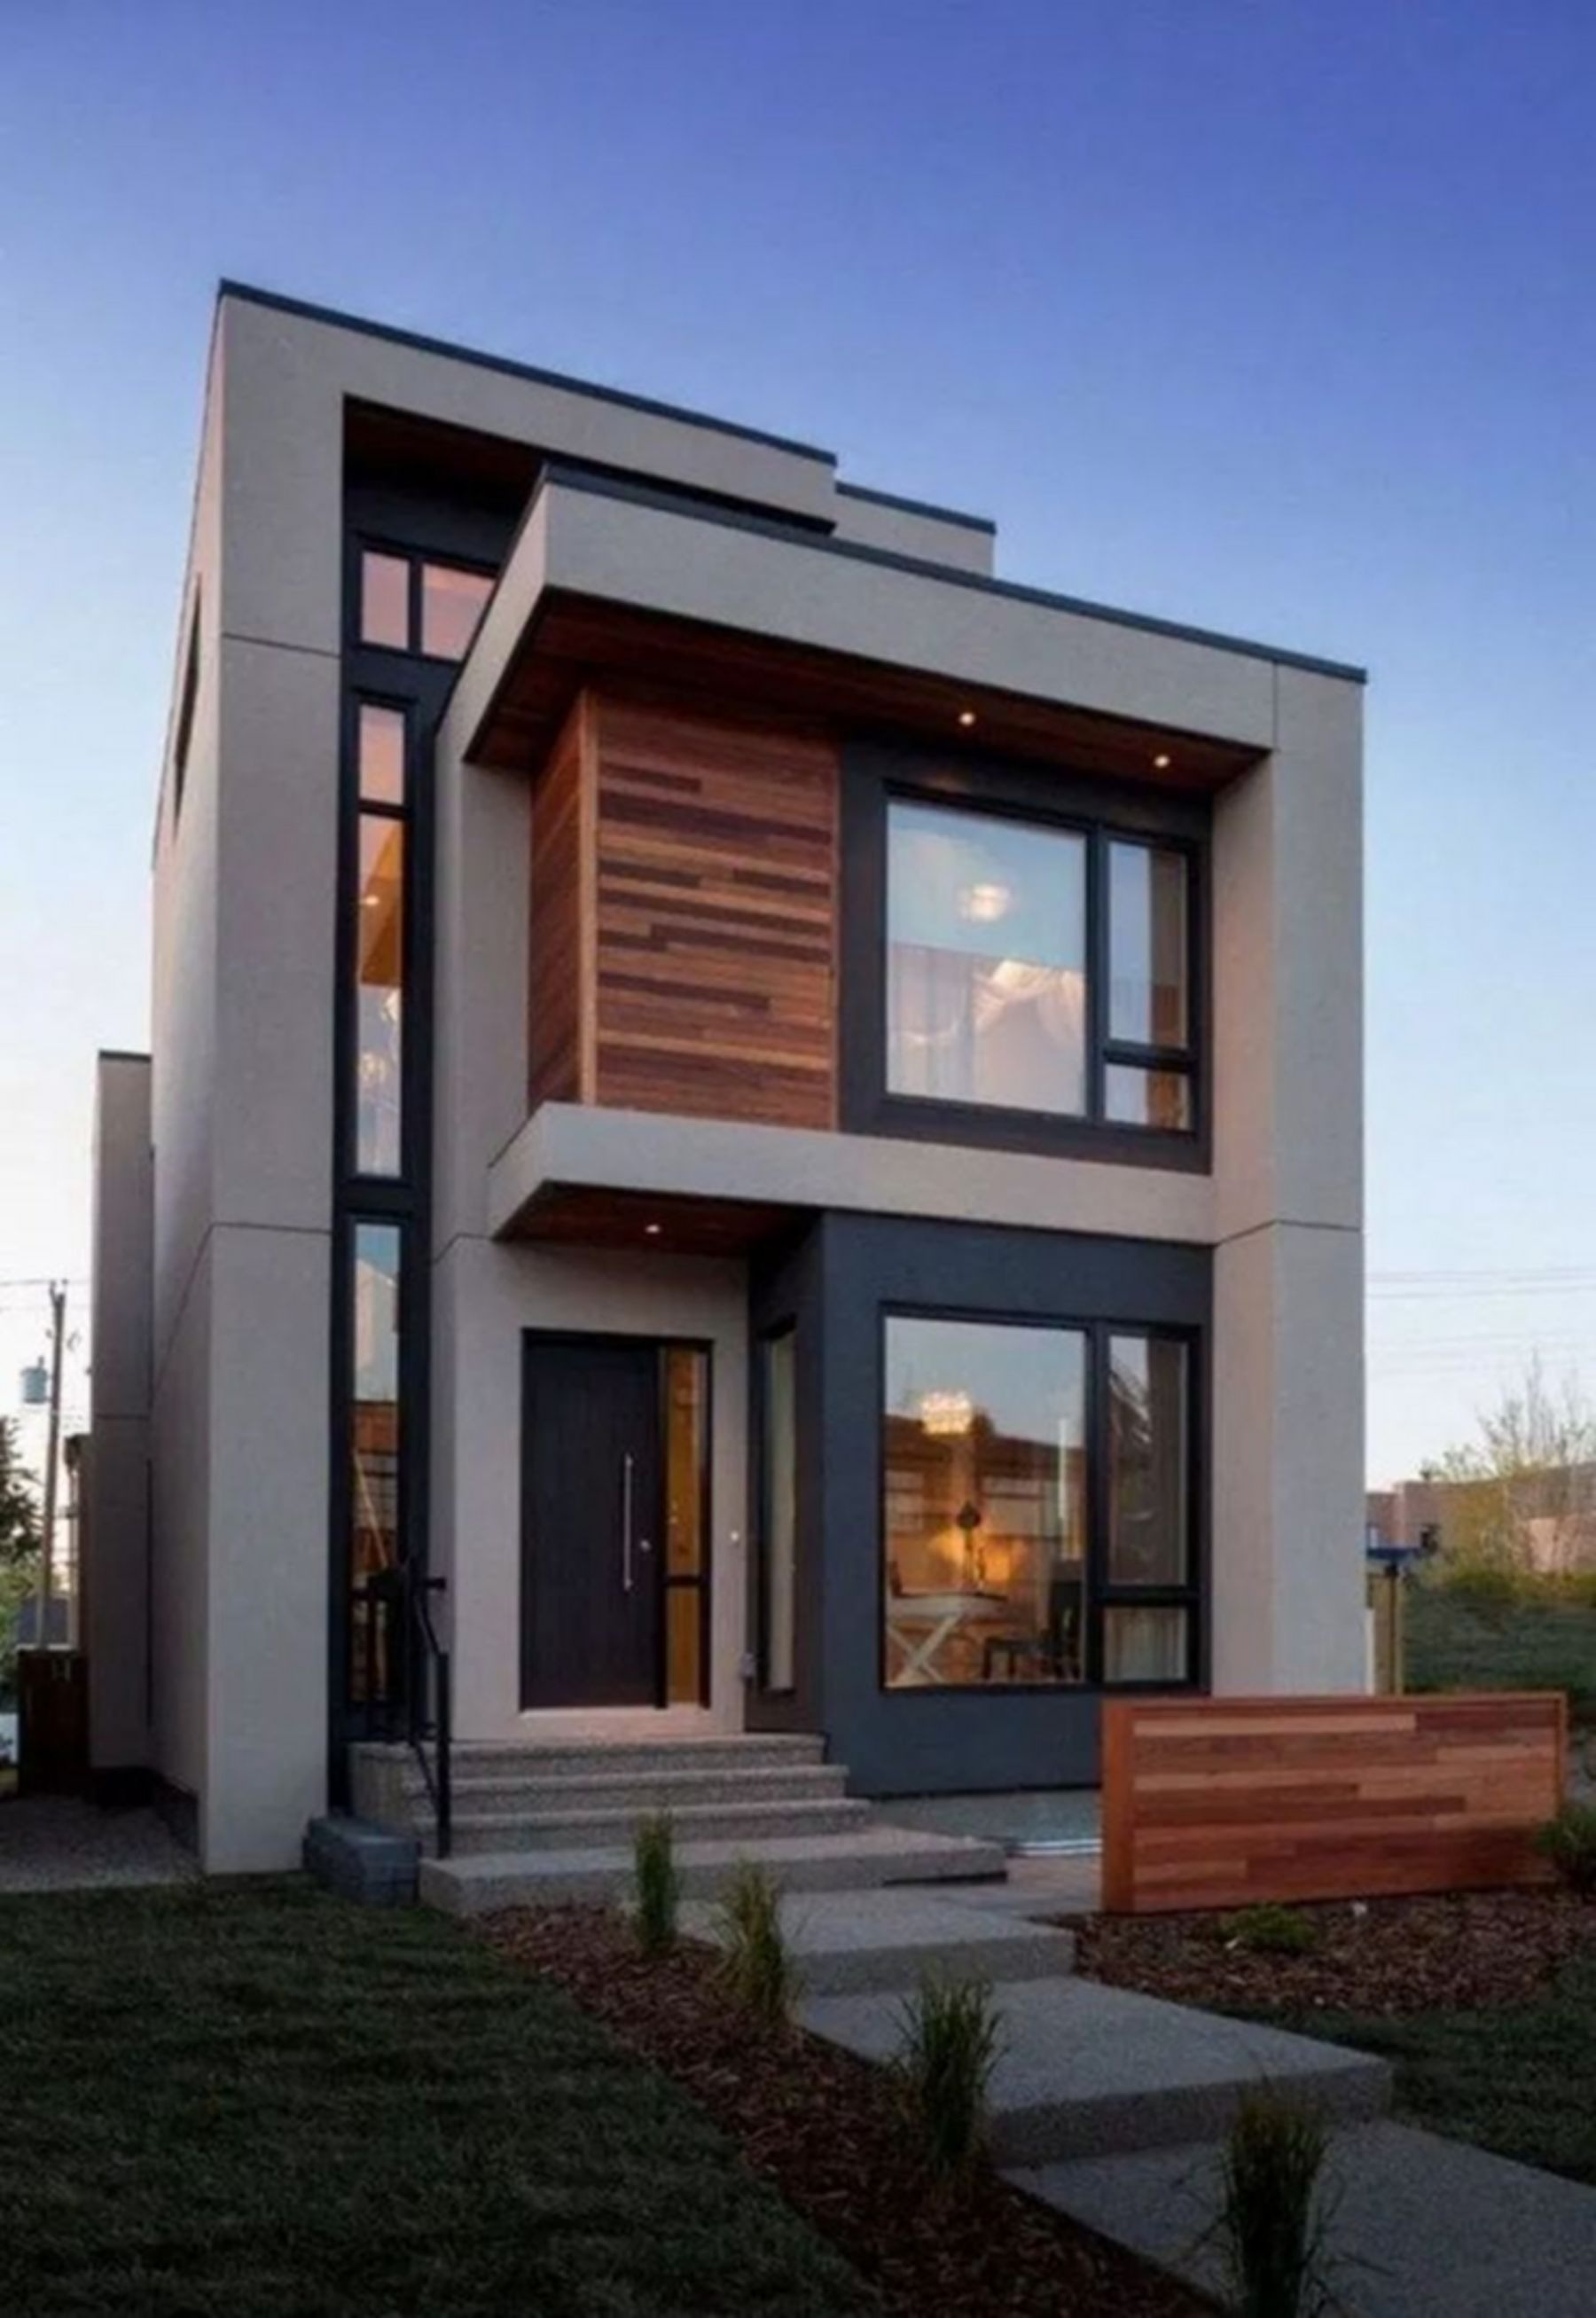 Top 10 House Design New top 10 Minimalist House Design Ideas for Best Inspirations